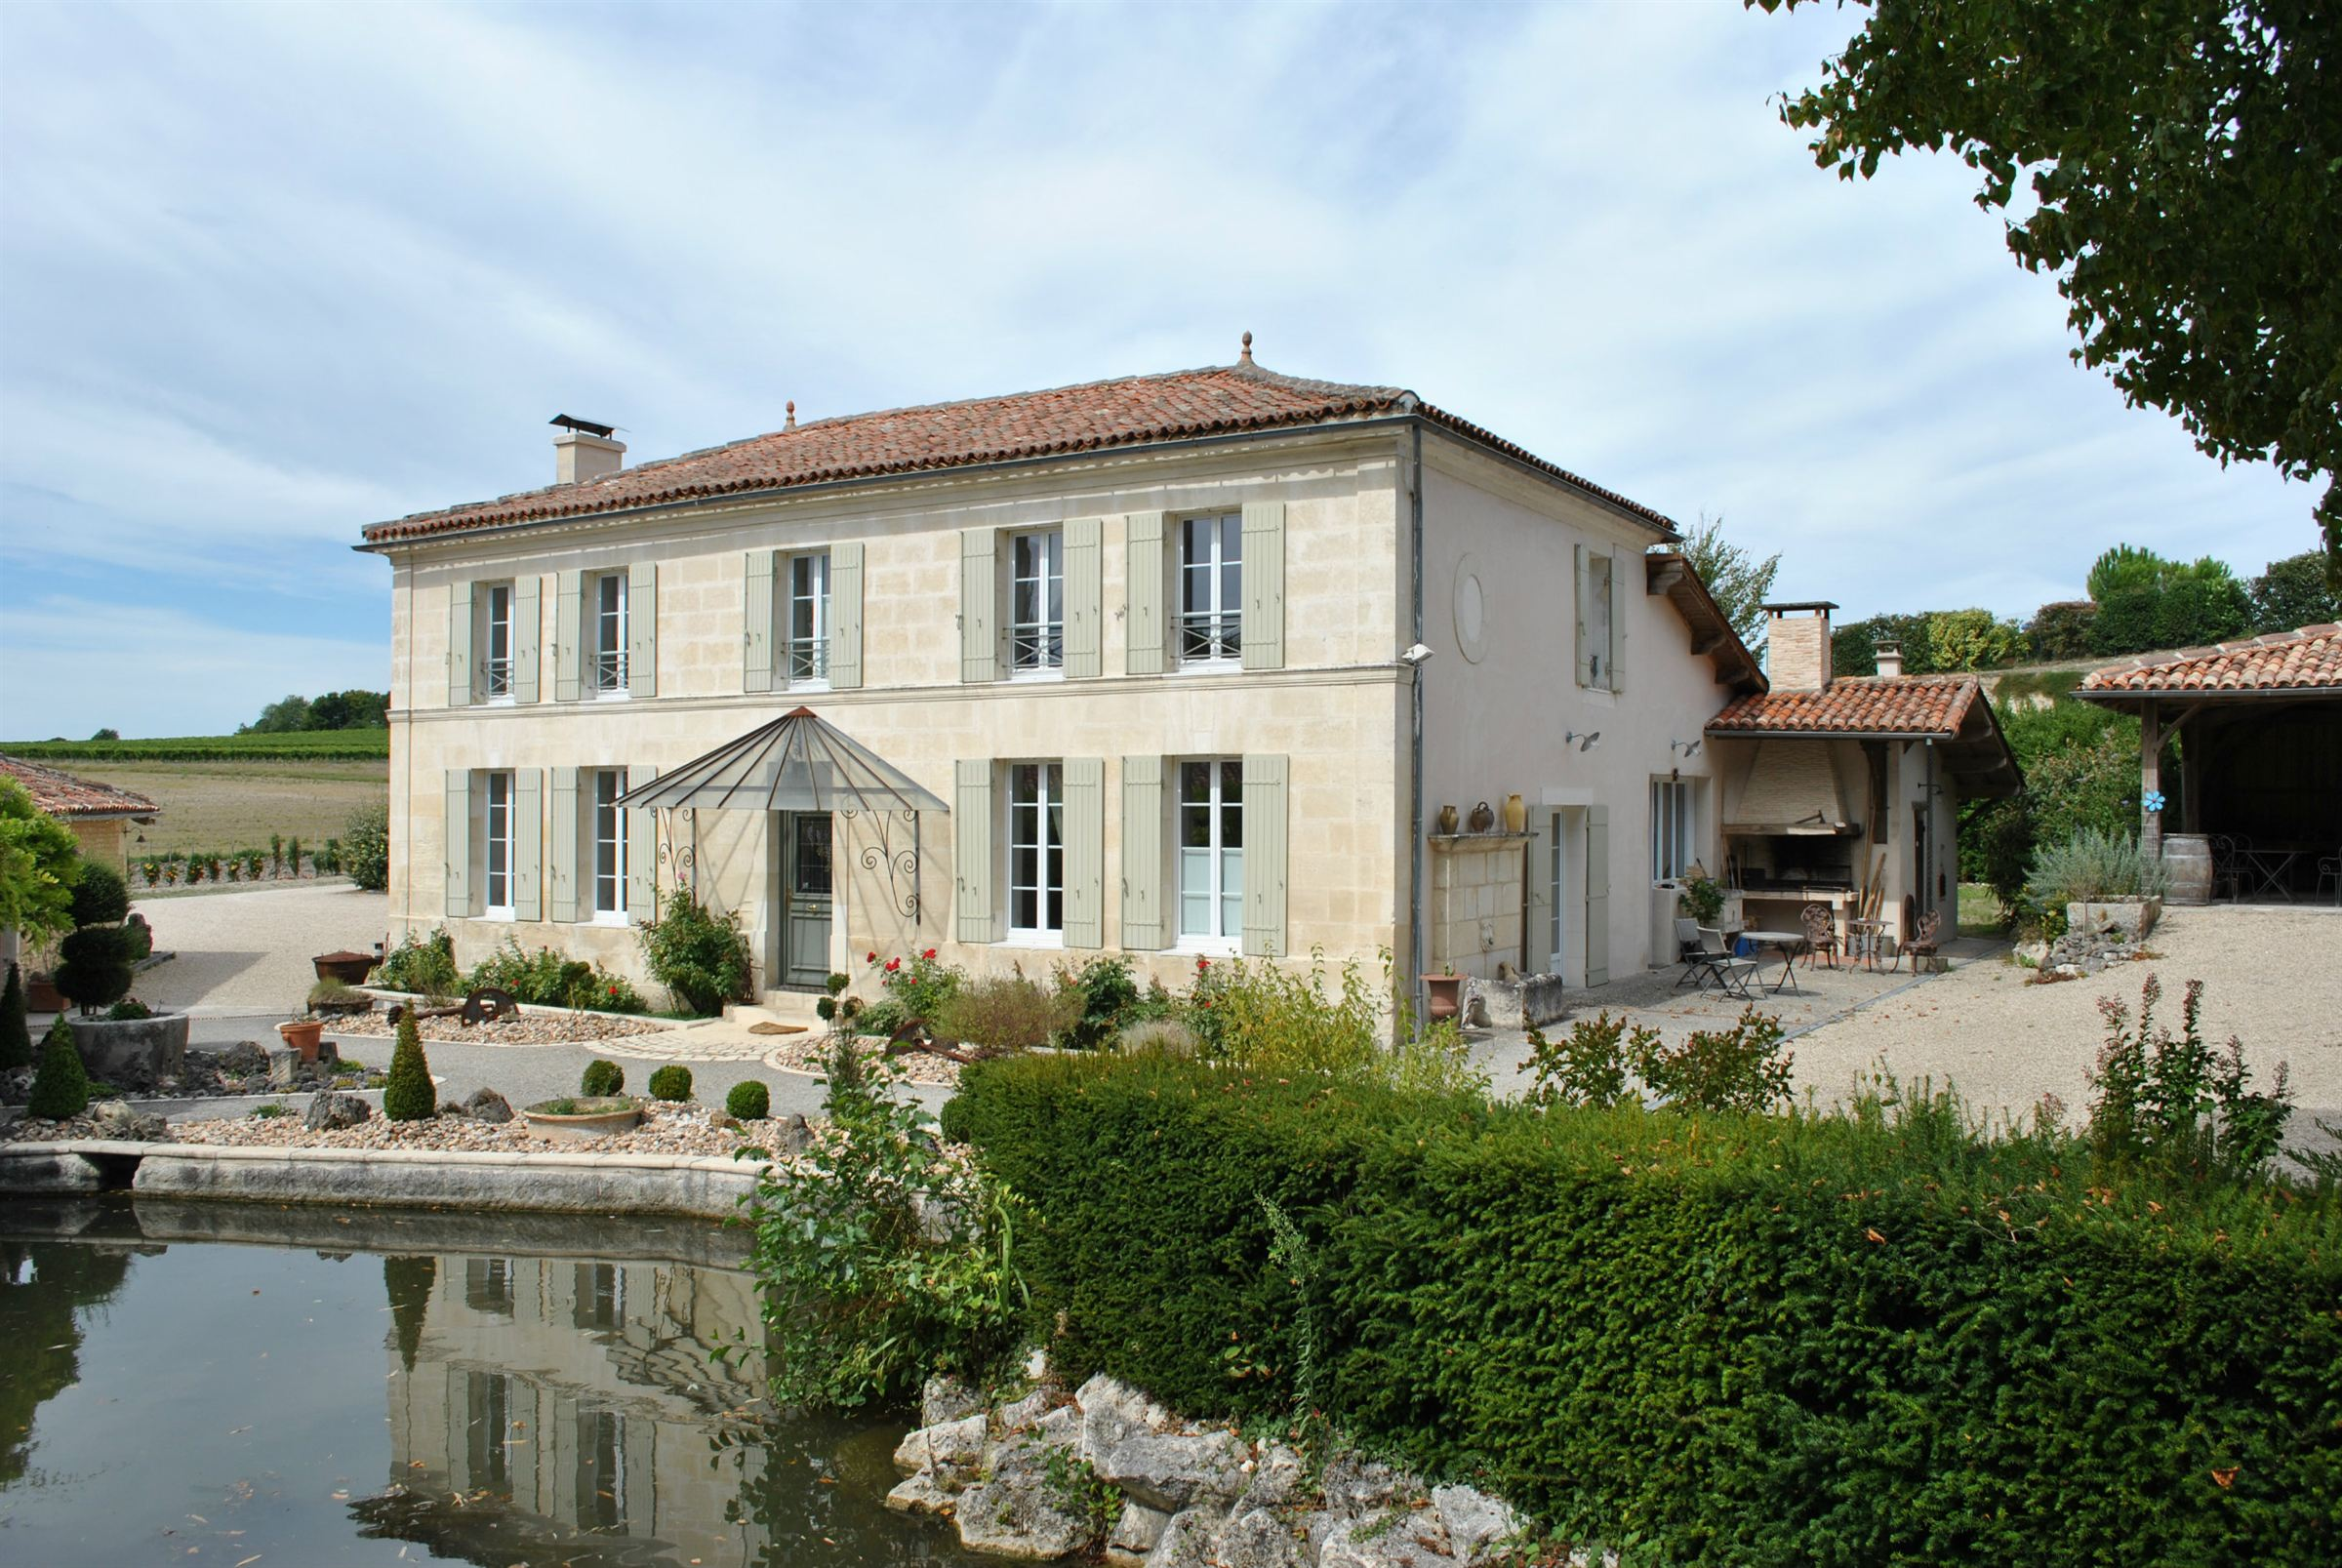 Property For Sale at Renovated Watermill in Charente Maritime